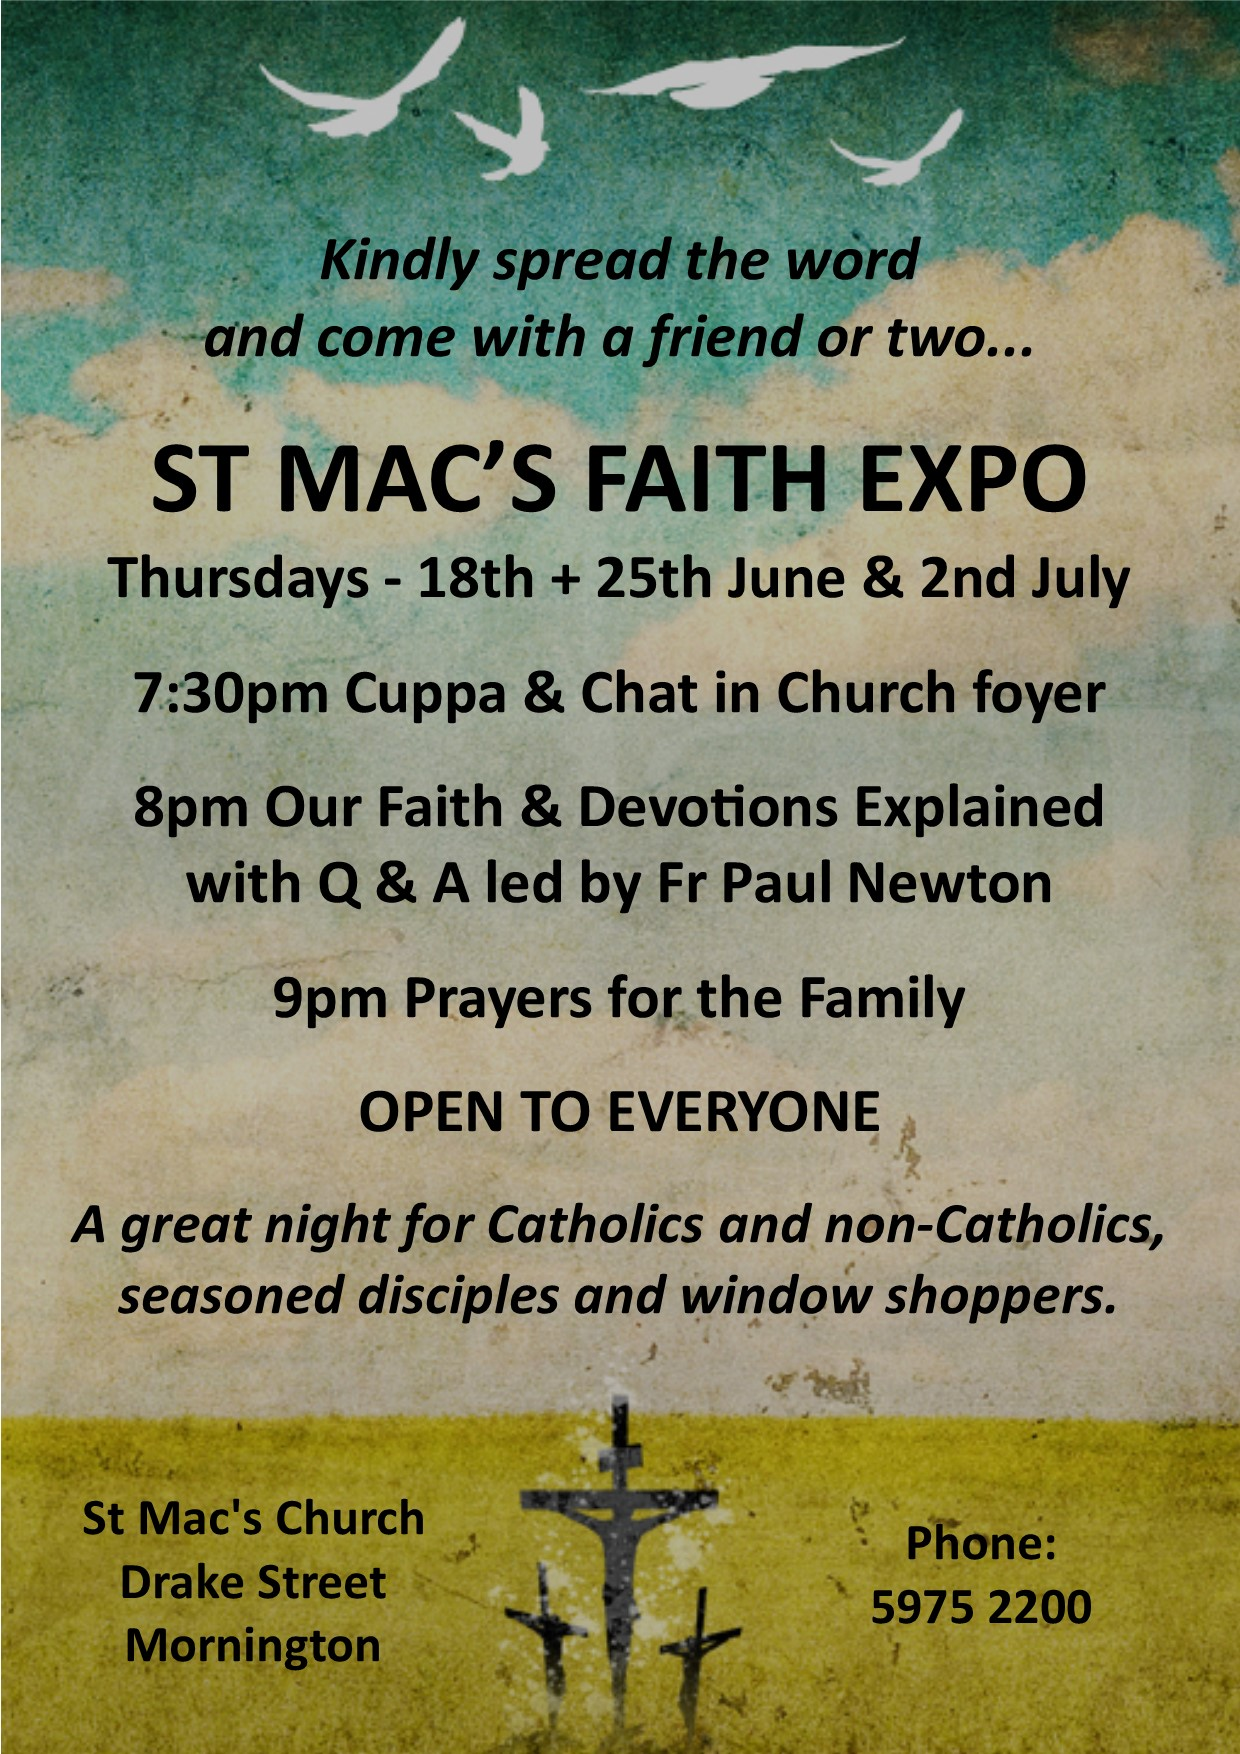 faith expo